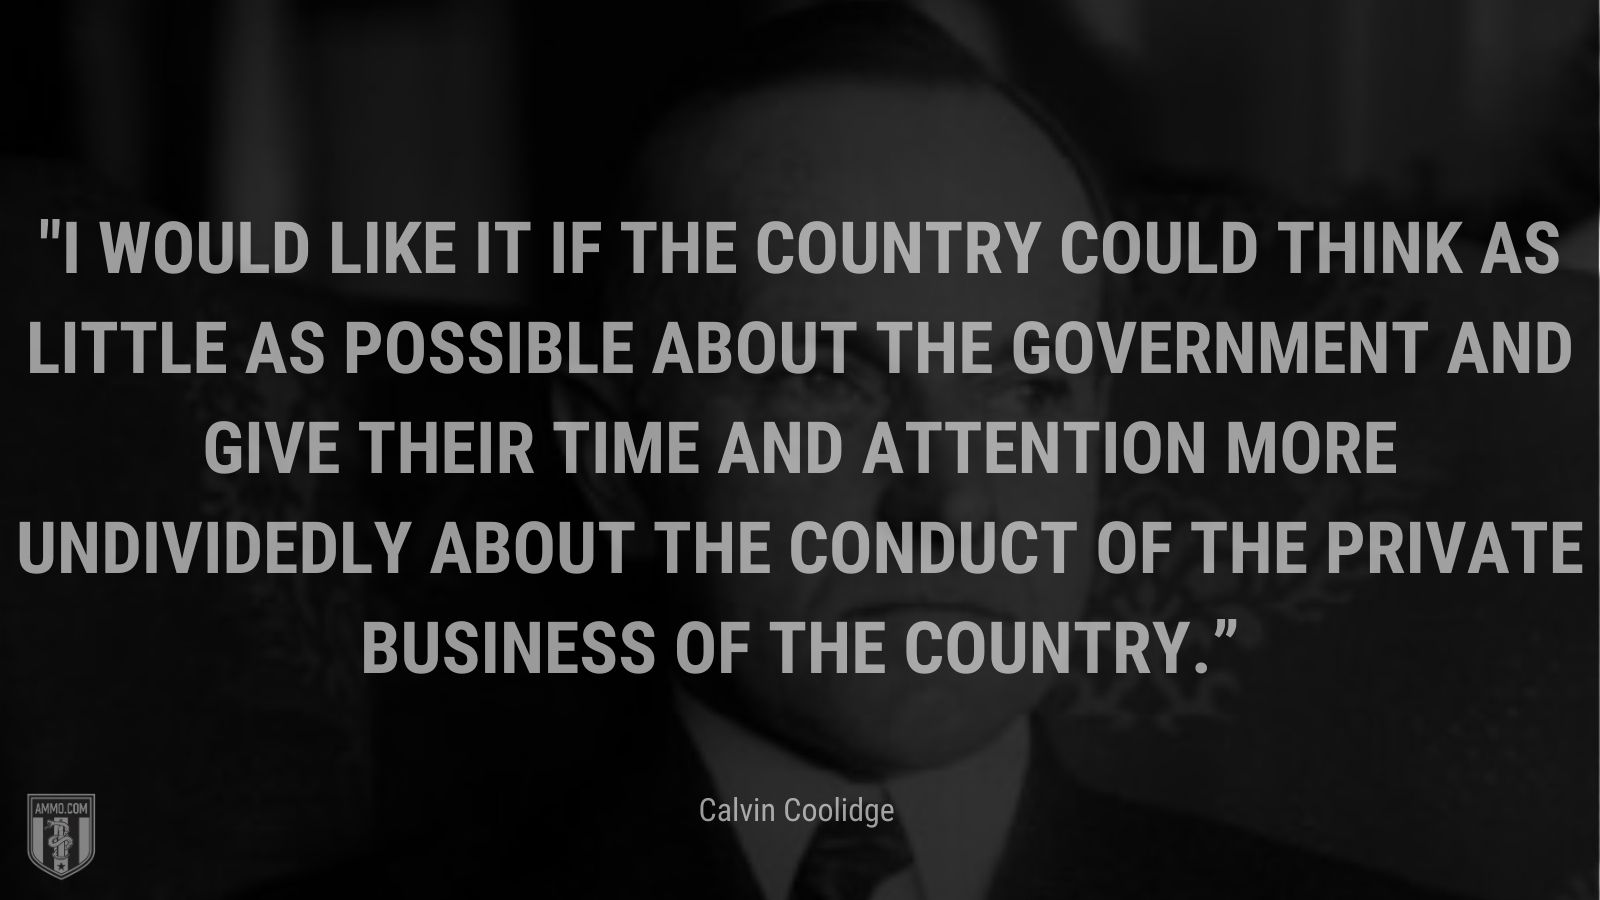 """""""I would like it if the country could think as little as possible about the Government and give their time and attention moreundividedly about the conduct of the private business of the country."""" - Calvin Coolidge"""